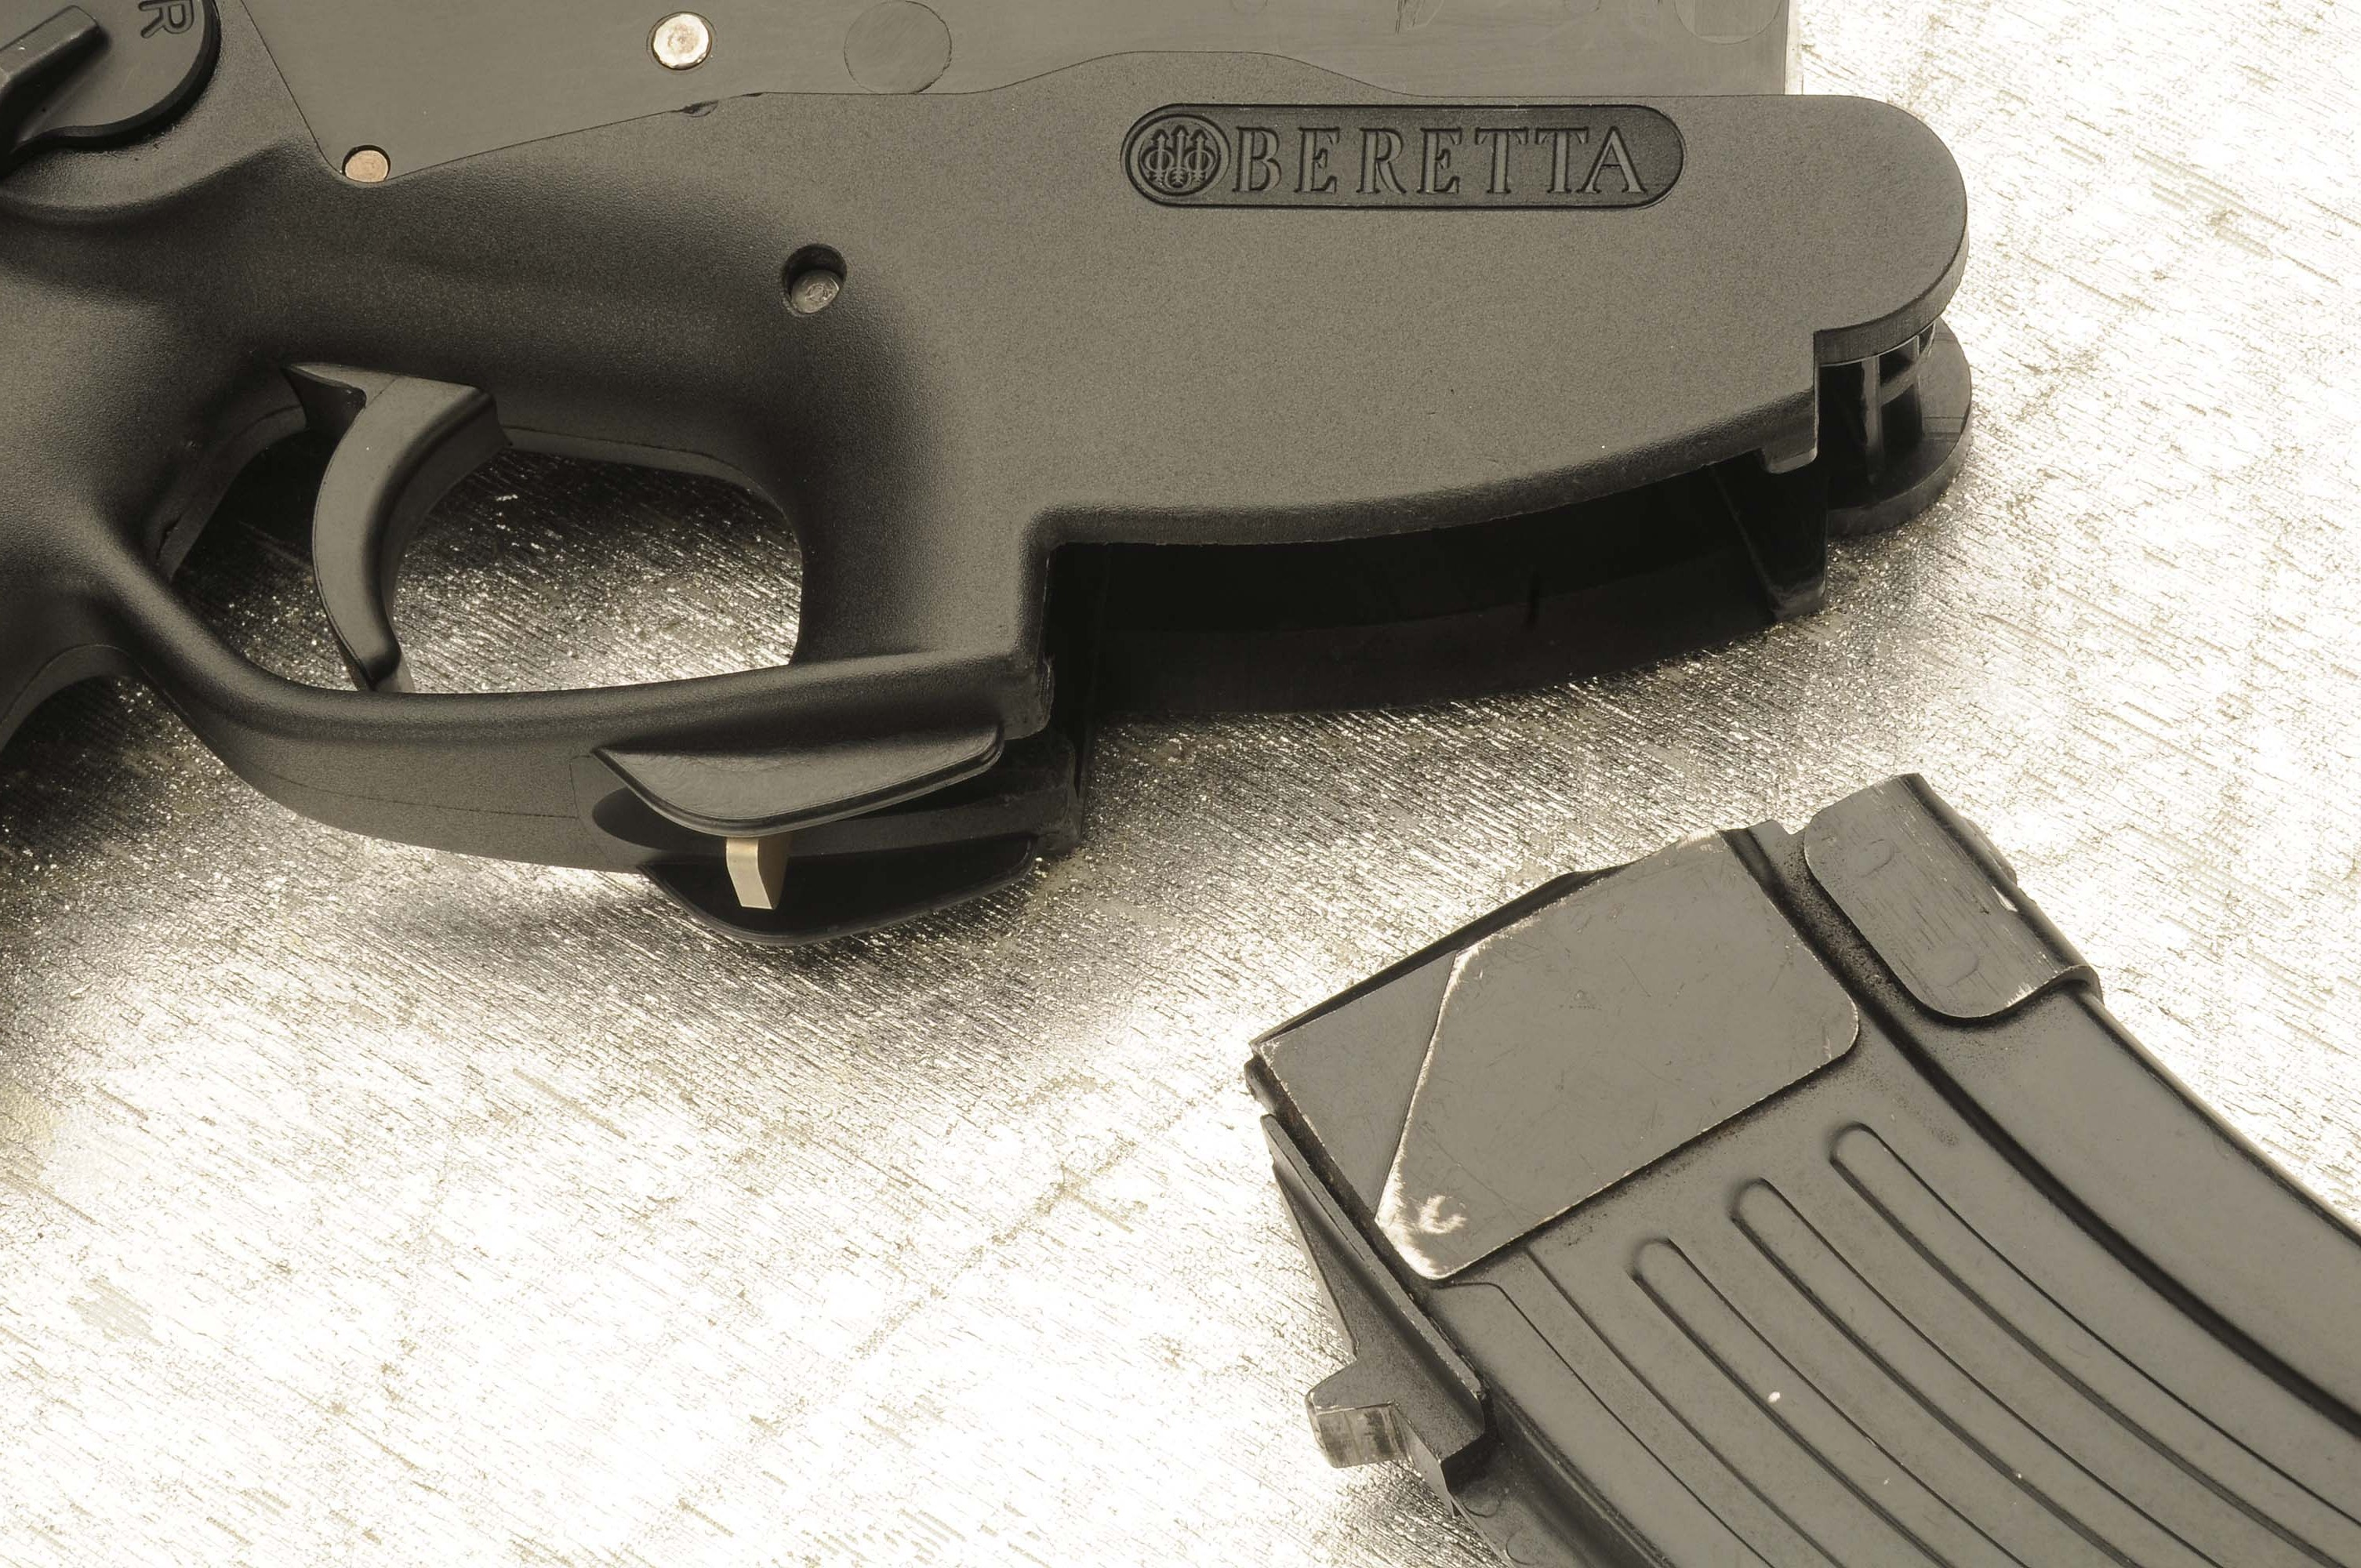 The most important detail of the new lower receiver is the redesign of the magazine well